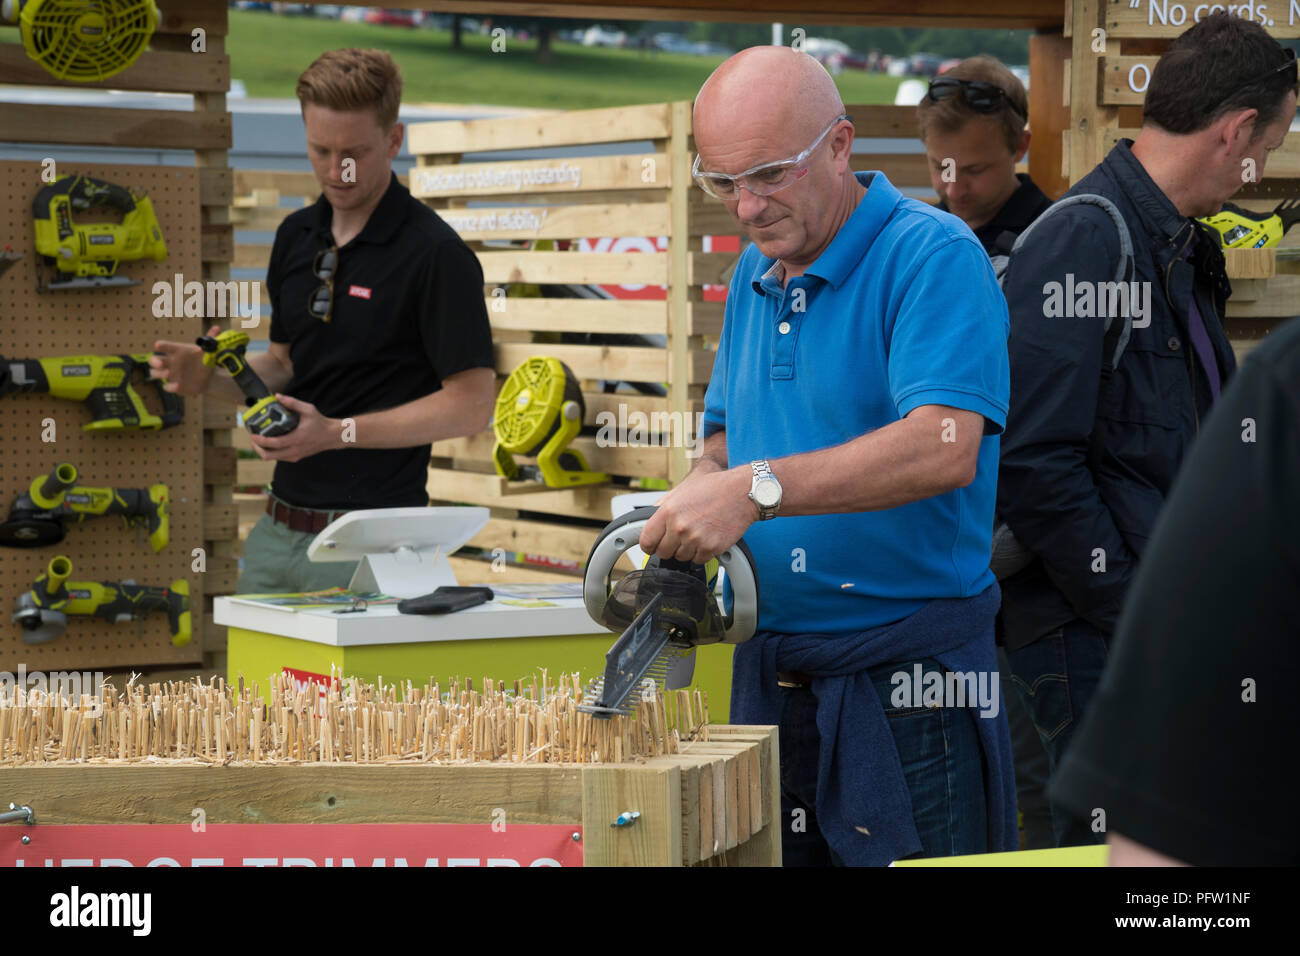 People looking at power tools for sale & man using cordless hedge trimmer - Ryobi trade stand, RHS Chatsworth Flower Show, Derbyshire, England, UK. - Stock Image